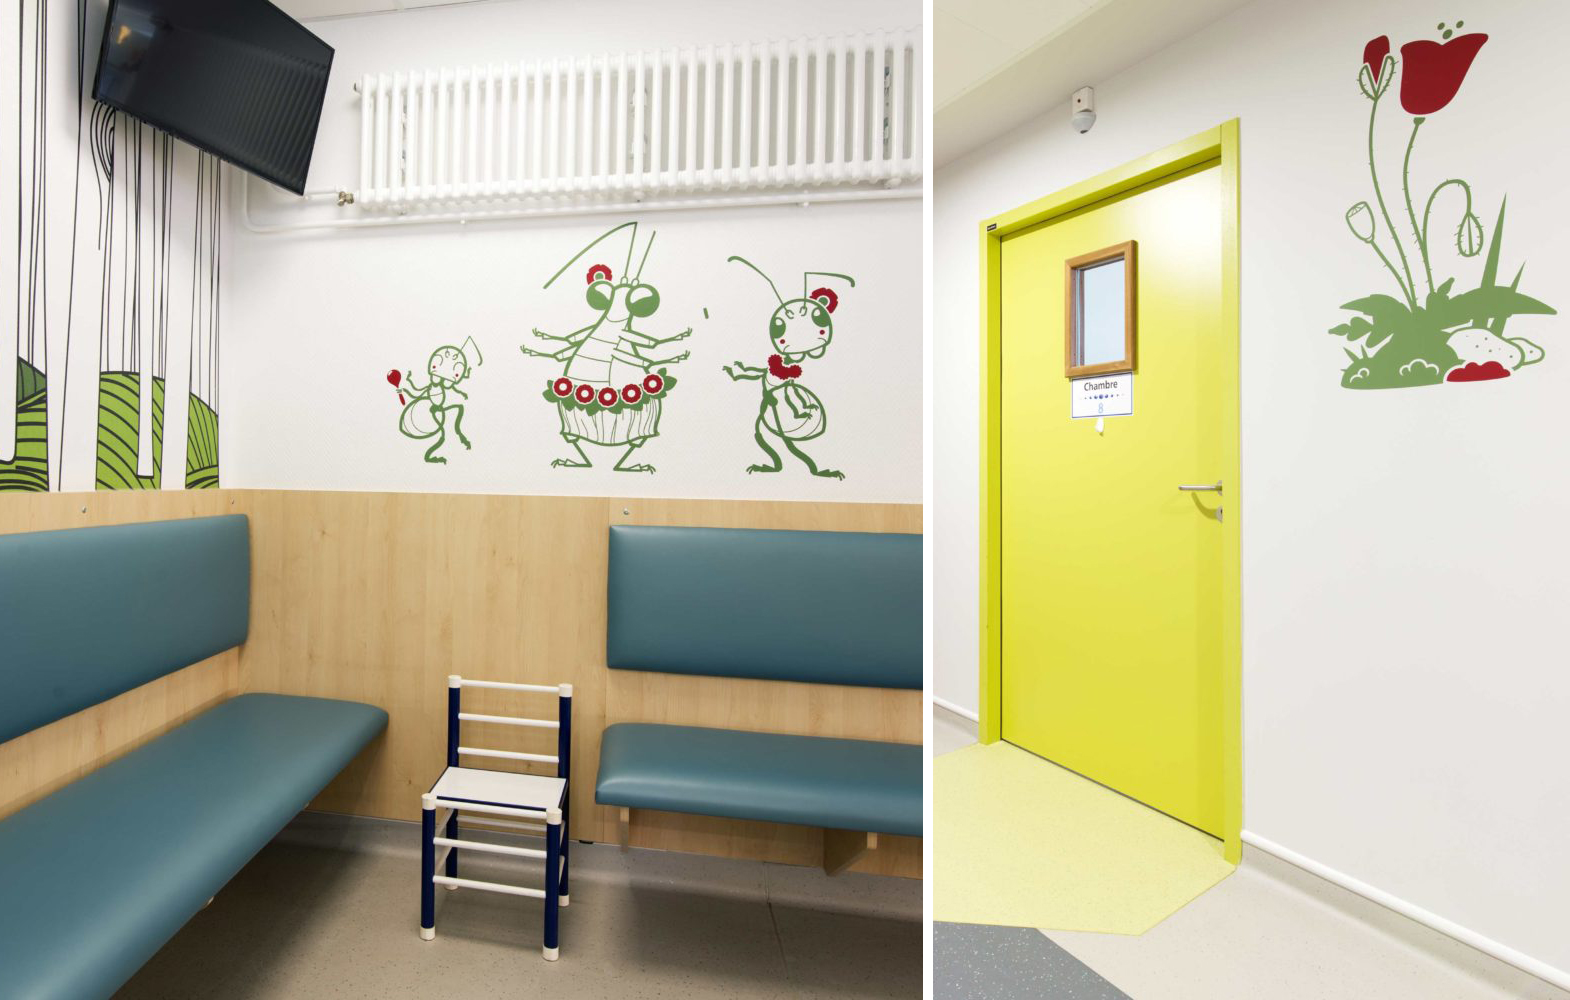 Children's Hospital Decoration with E-Glue Kids Wall Decals